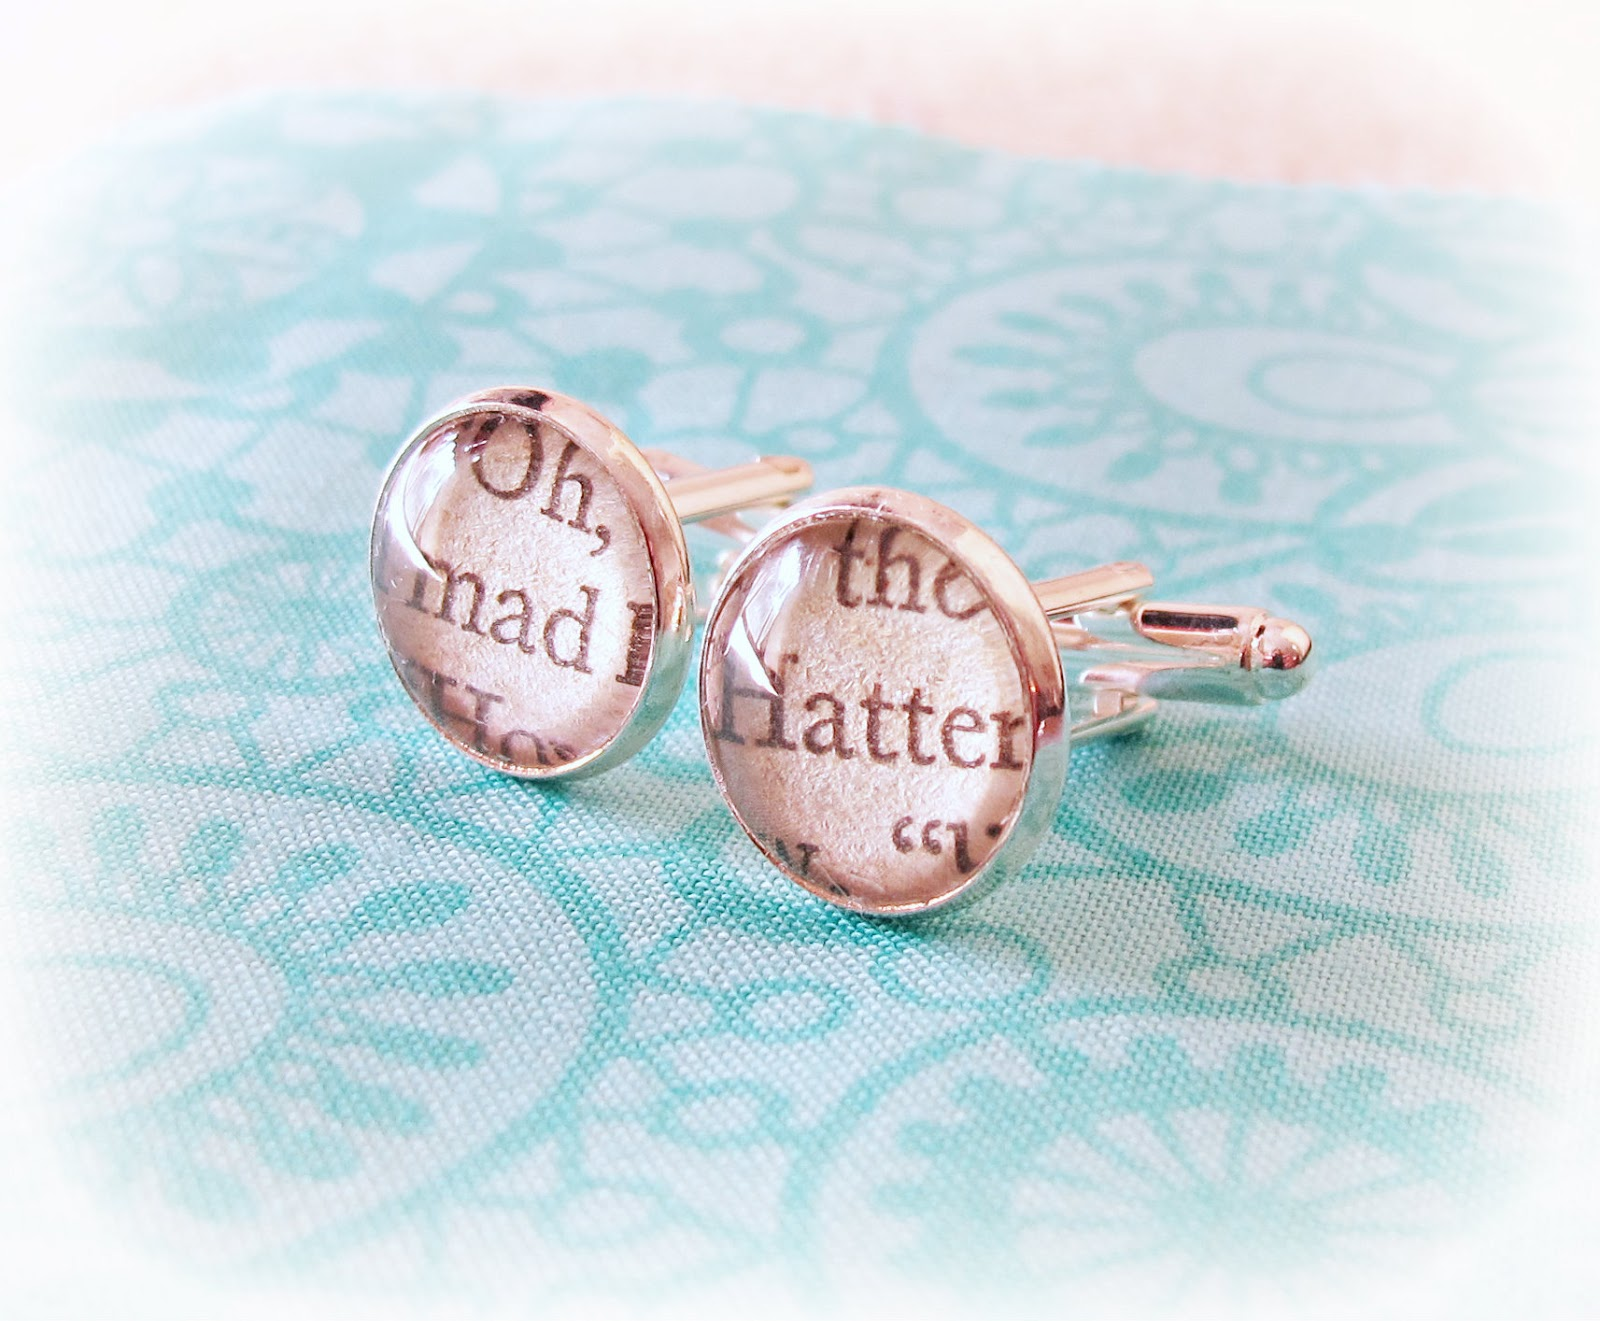 image mad hatter cufflinks book text upcycled vintage two cheeky monkeys alice in wonderland